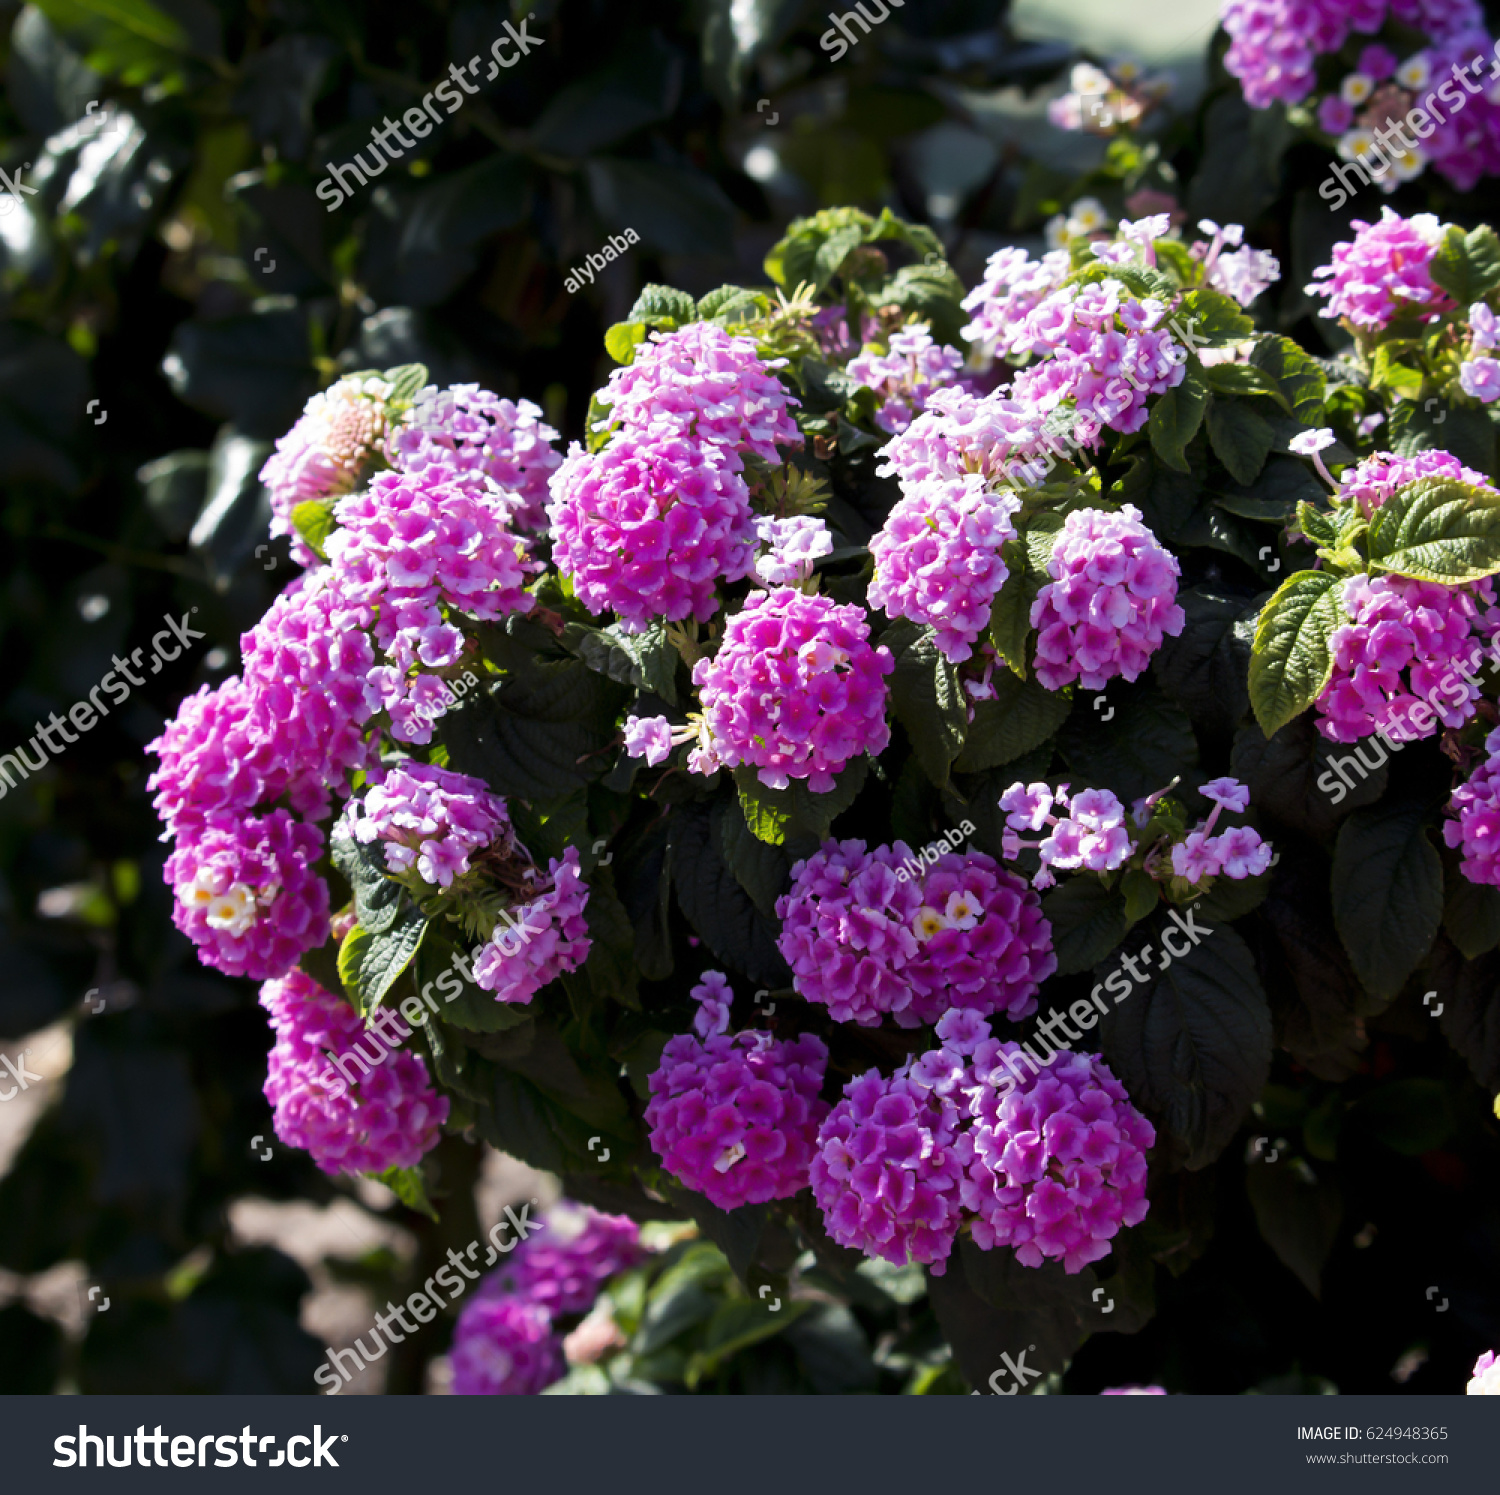 Lantanas Aromatic Flower Clusters Umbels Mix Stock Photo Edit Now